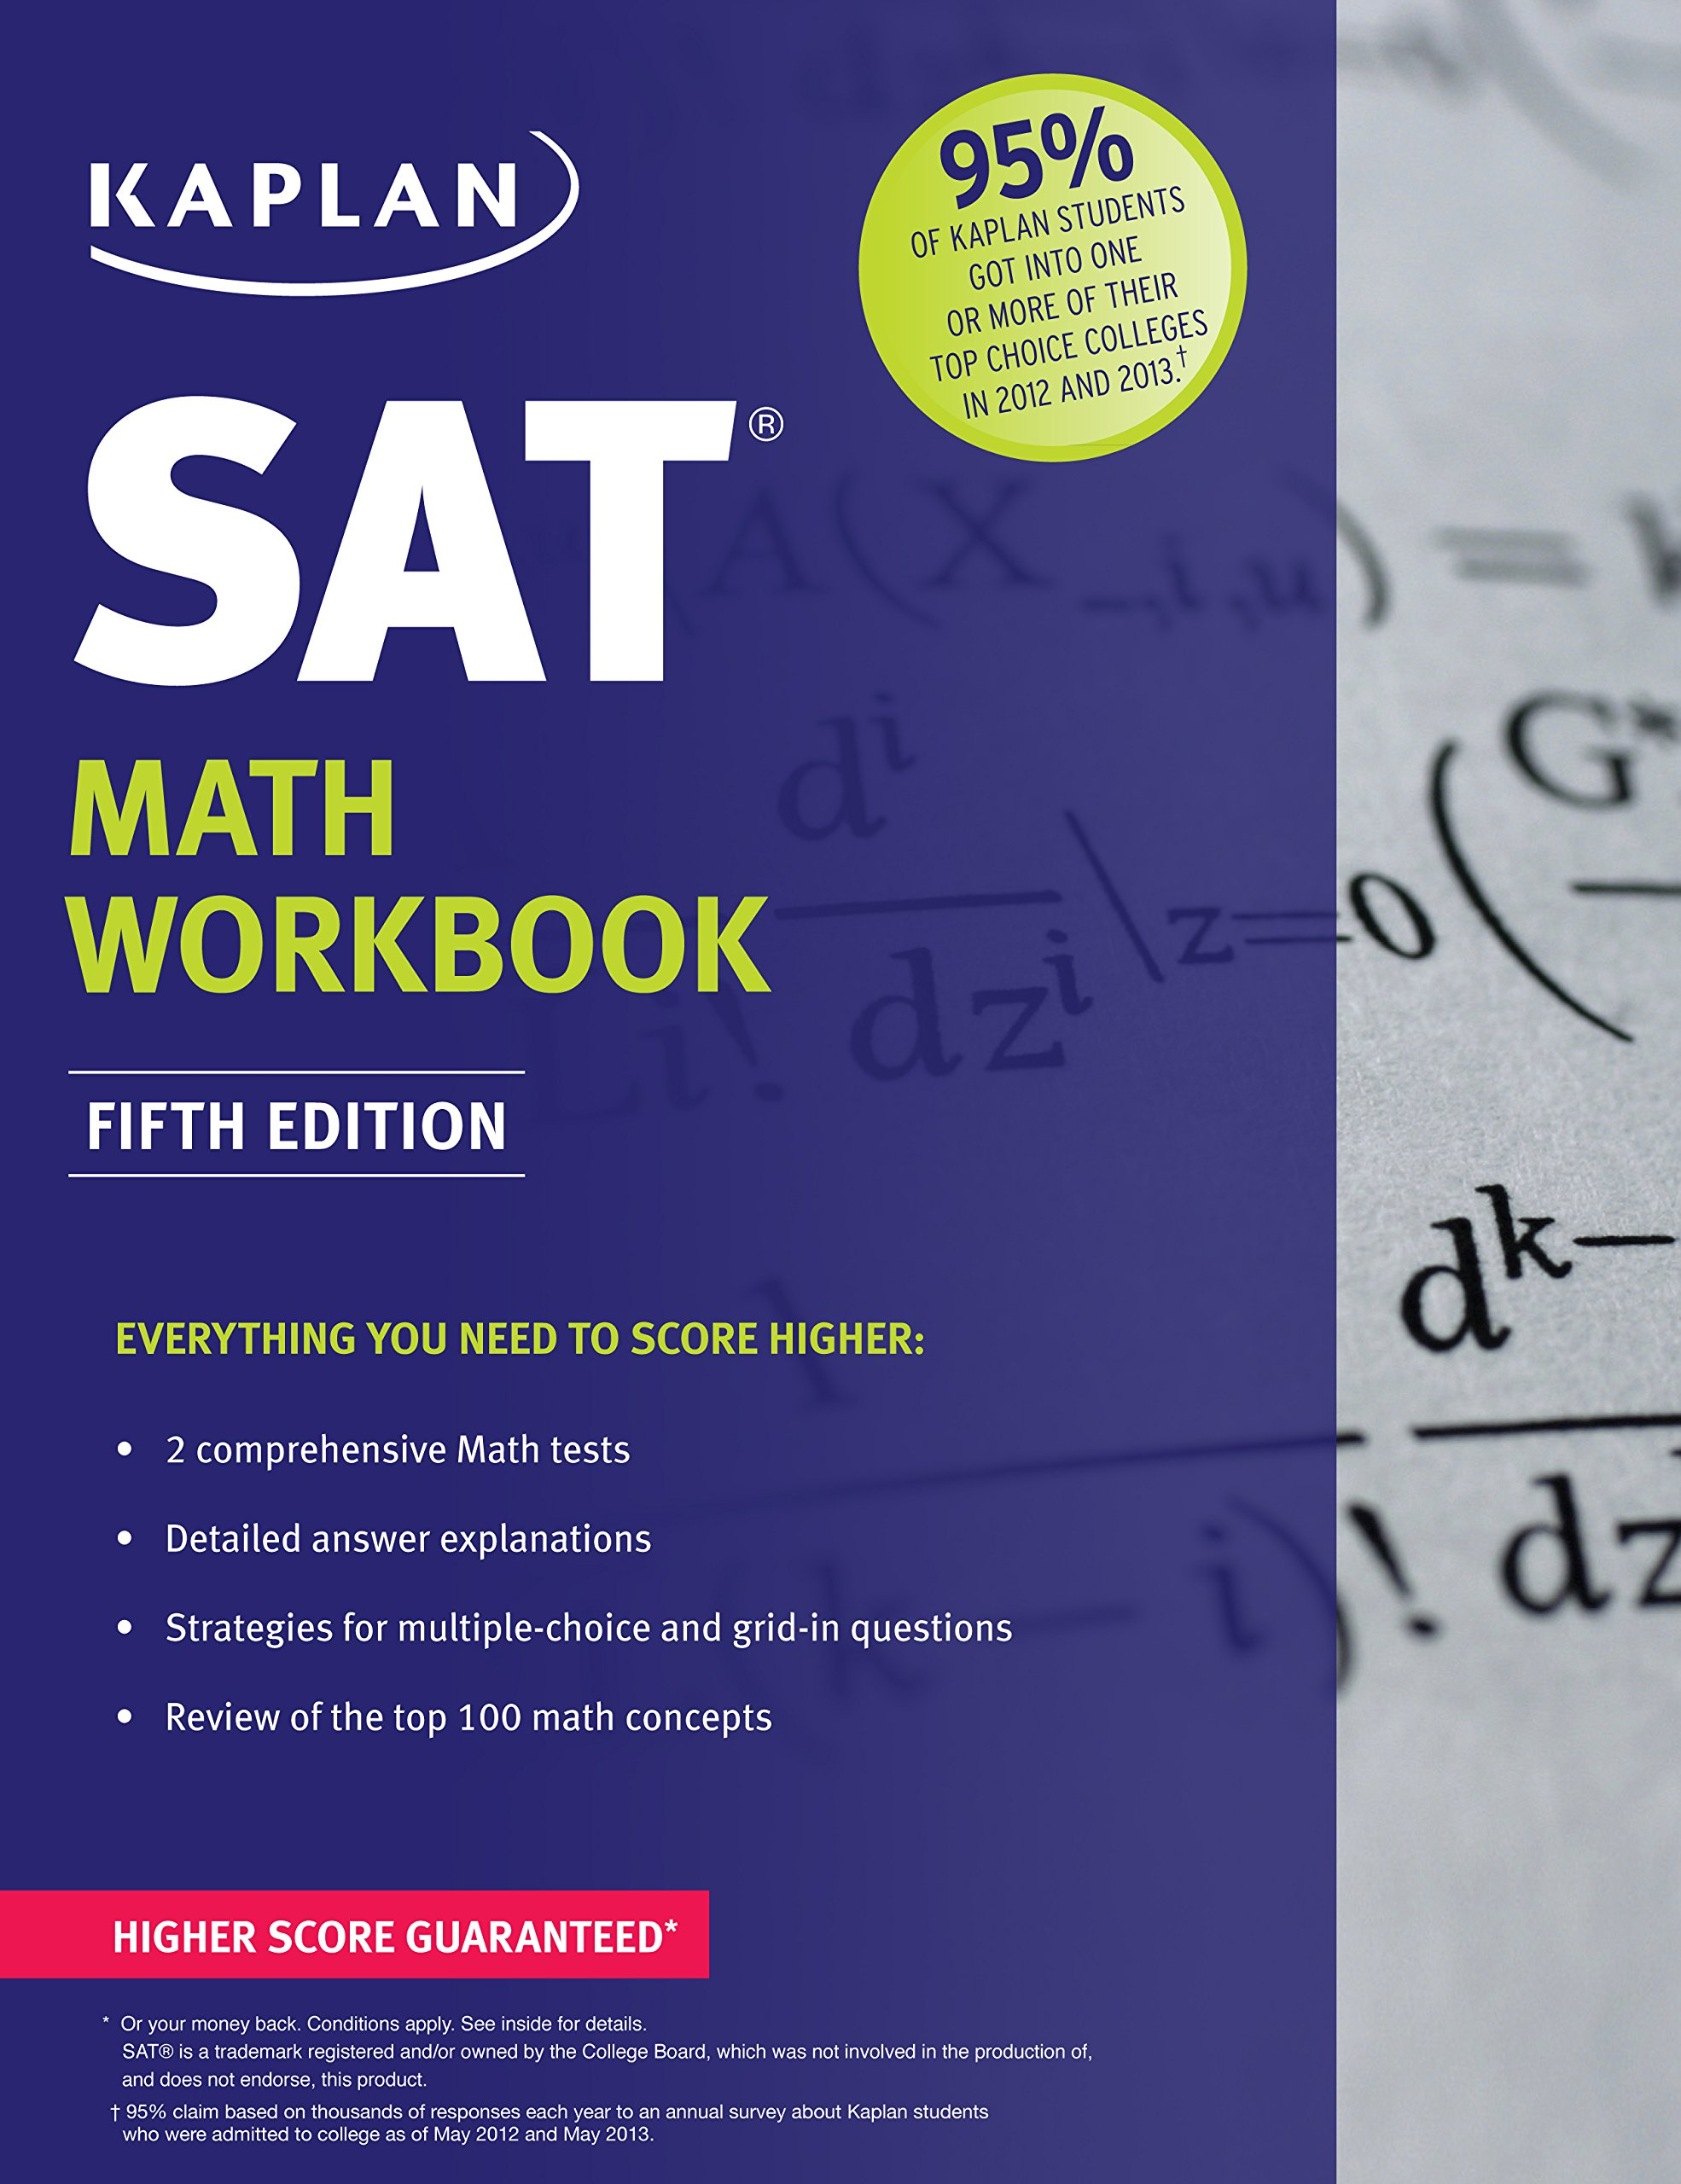 Worksheet Online Math Workbook amazon com kaplan sat math workbook test prep 9781618655929 books